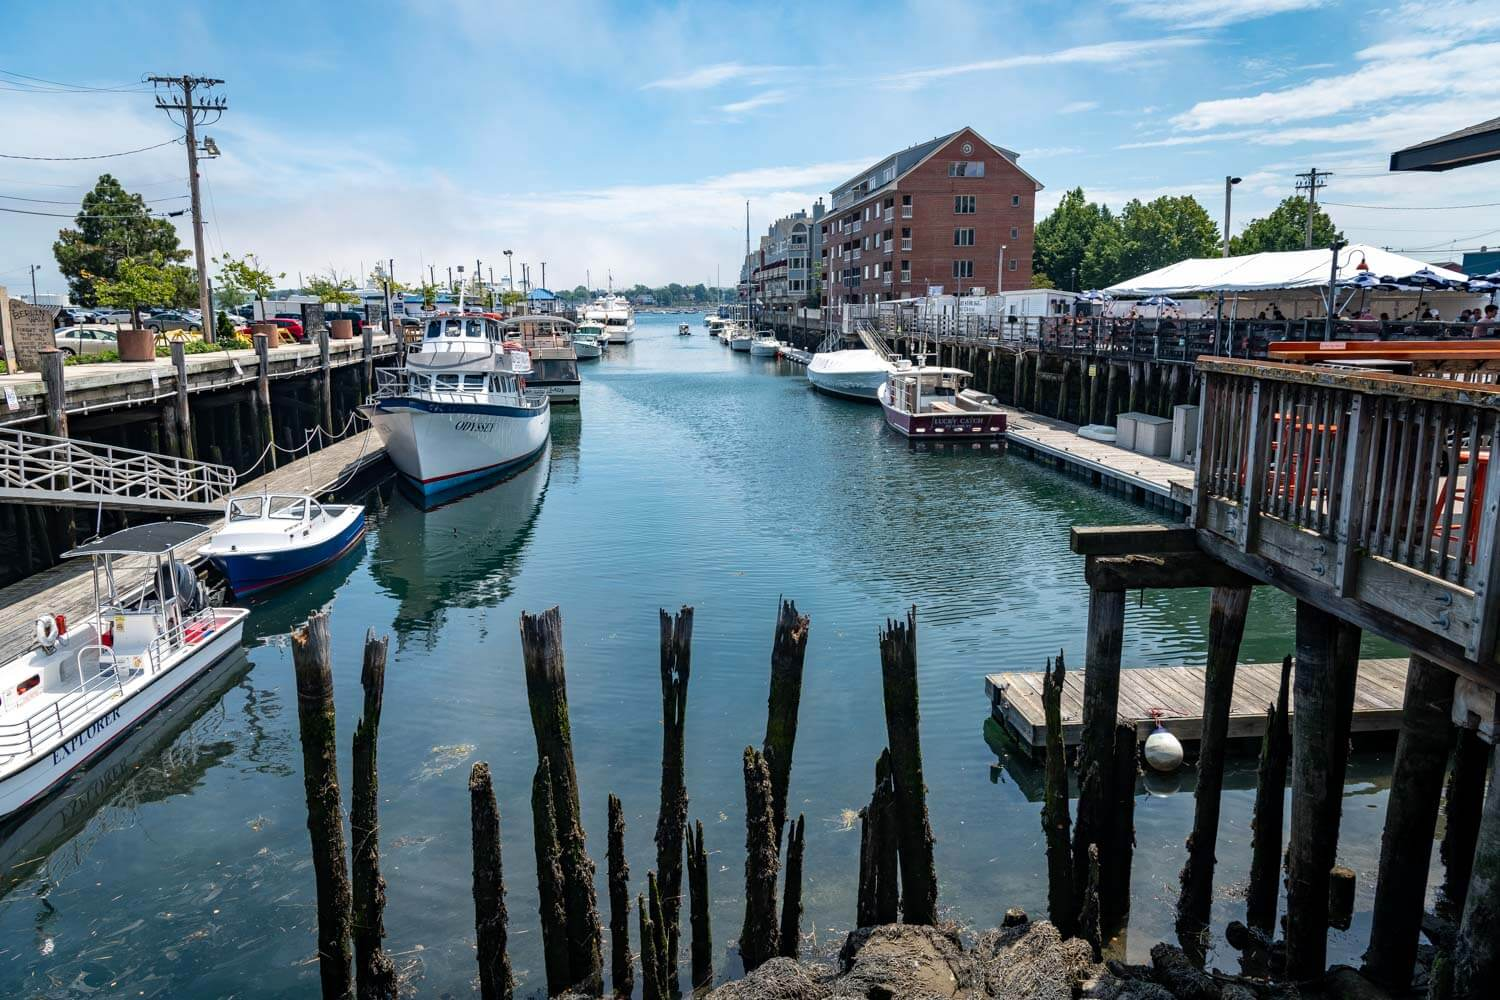 Docks on Commercial Street in Downtown Portland, Maine